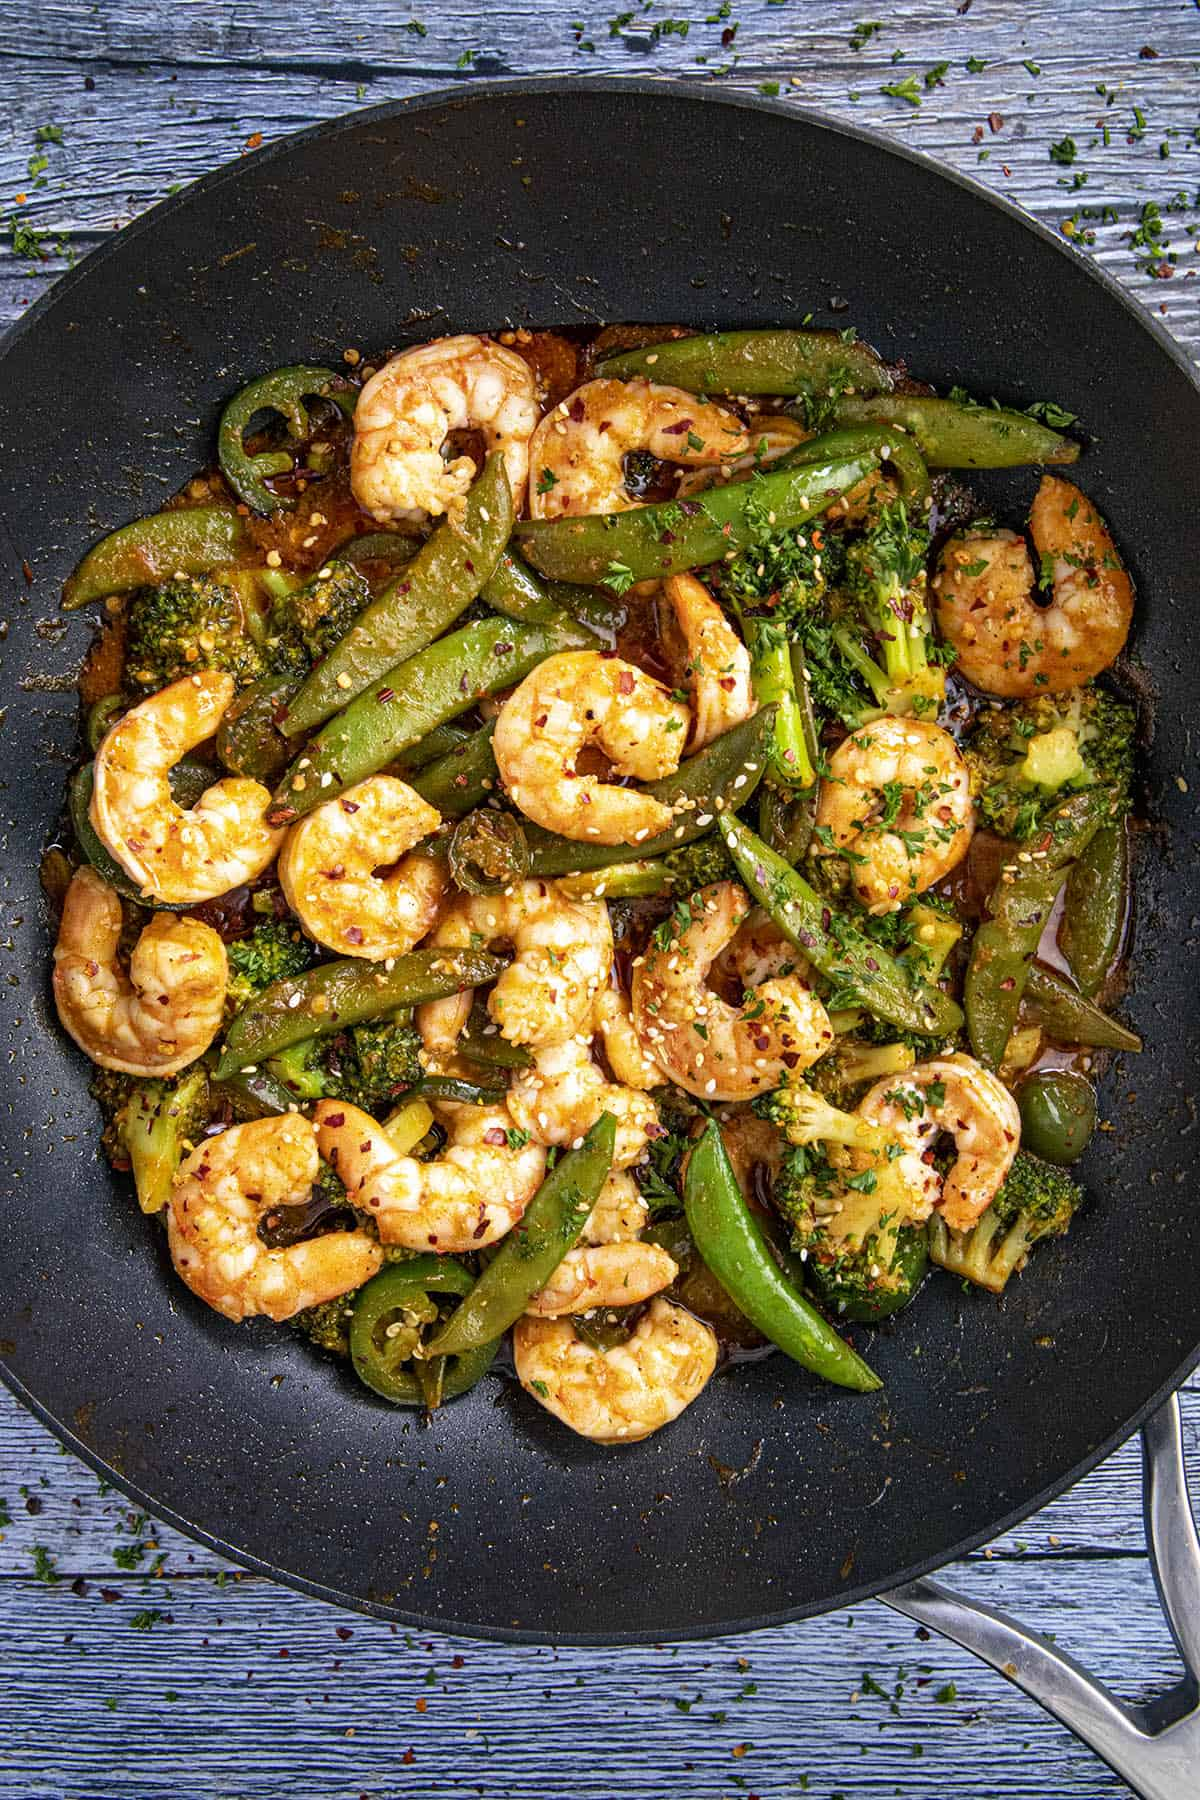 Spicy Shrimp Stir Fry ready to serve